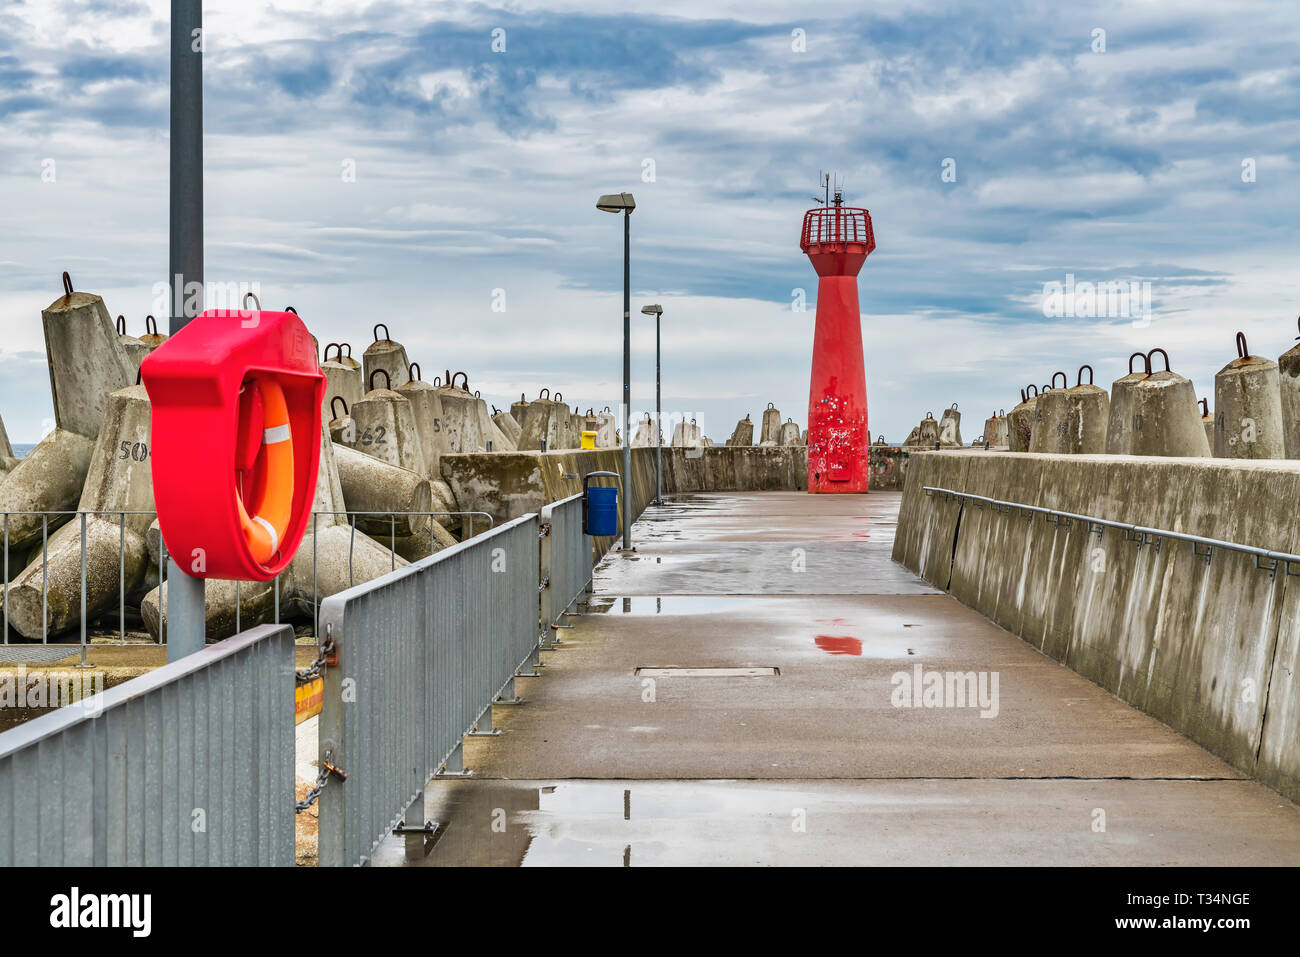 The Red Lighthouse is a so-called pier light and marks the entrance to the harbor of Kolobrzeg, West Pomerania, Poland, Europe - Stock Image